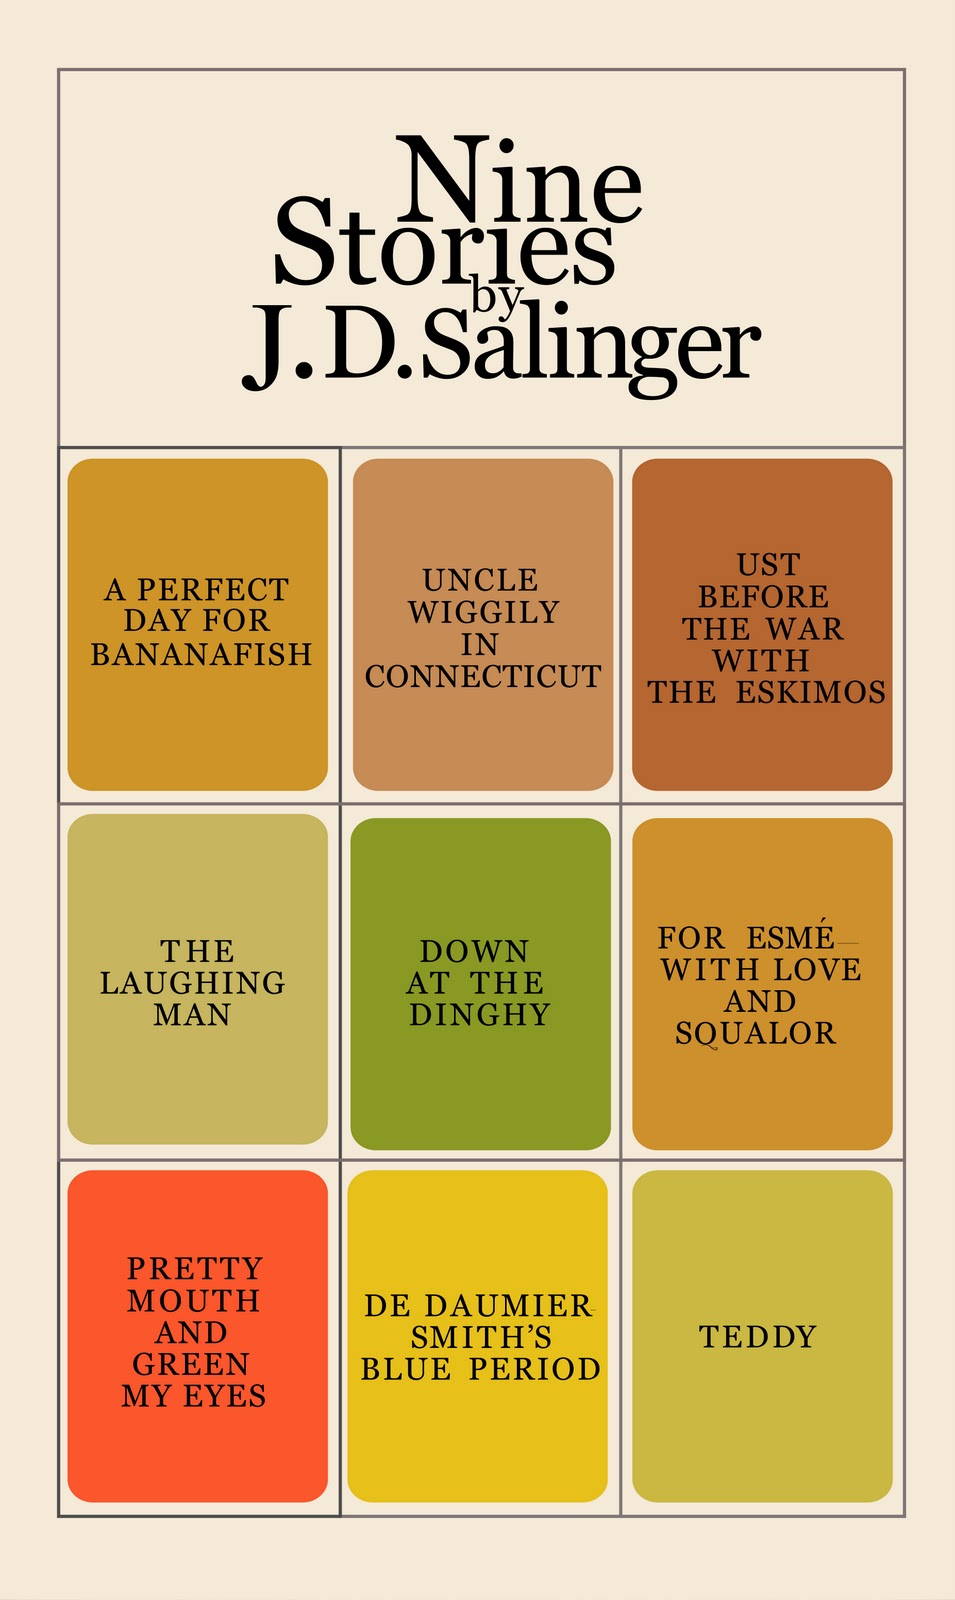 J. D. Salinger Writing Styles in The Catcher in the Rye